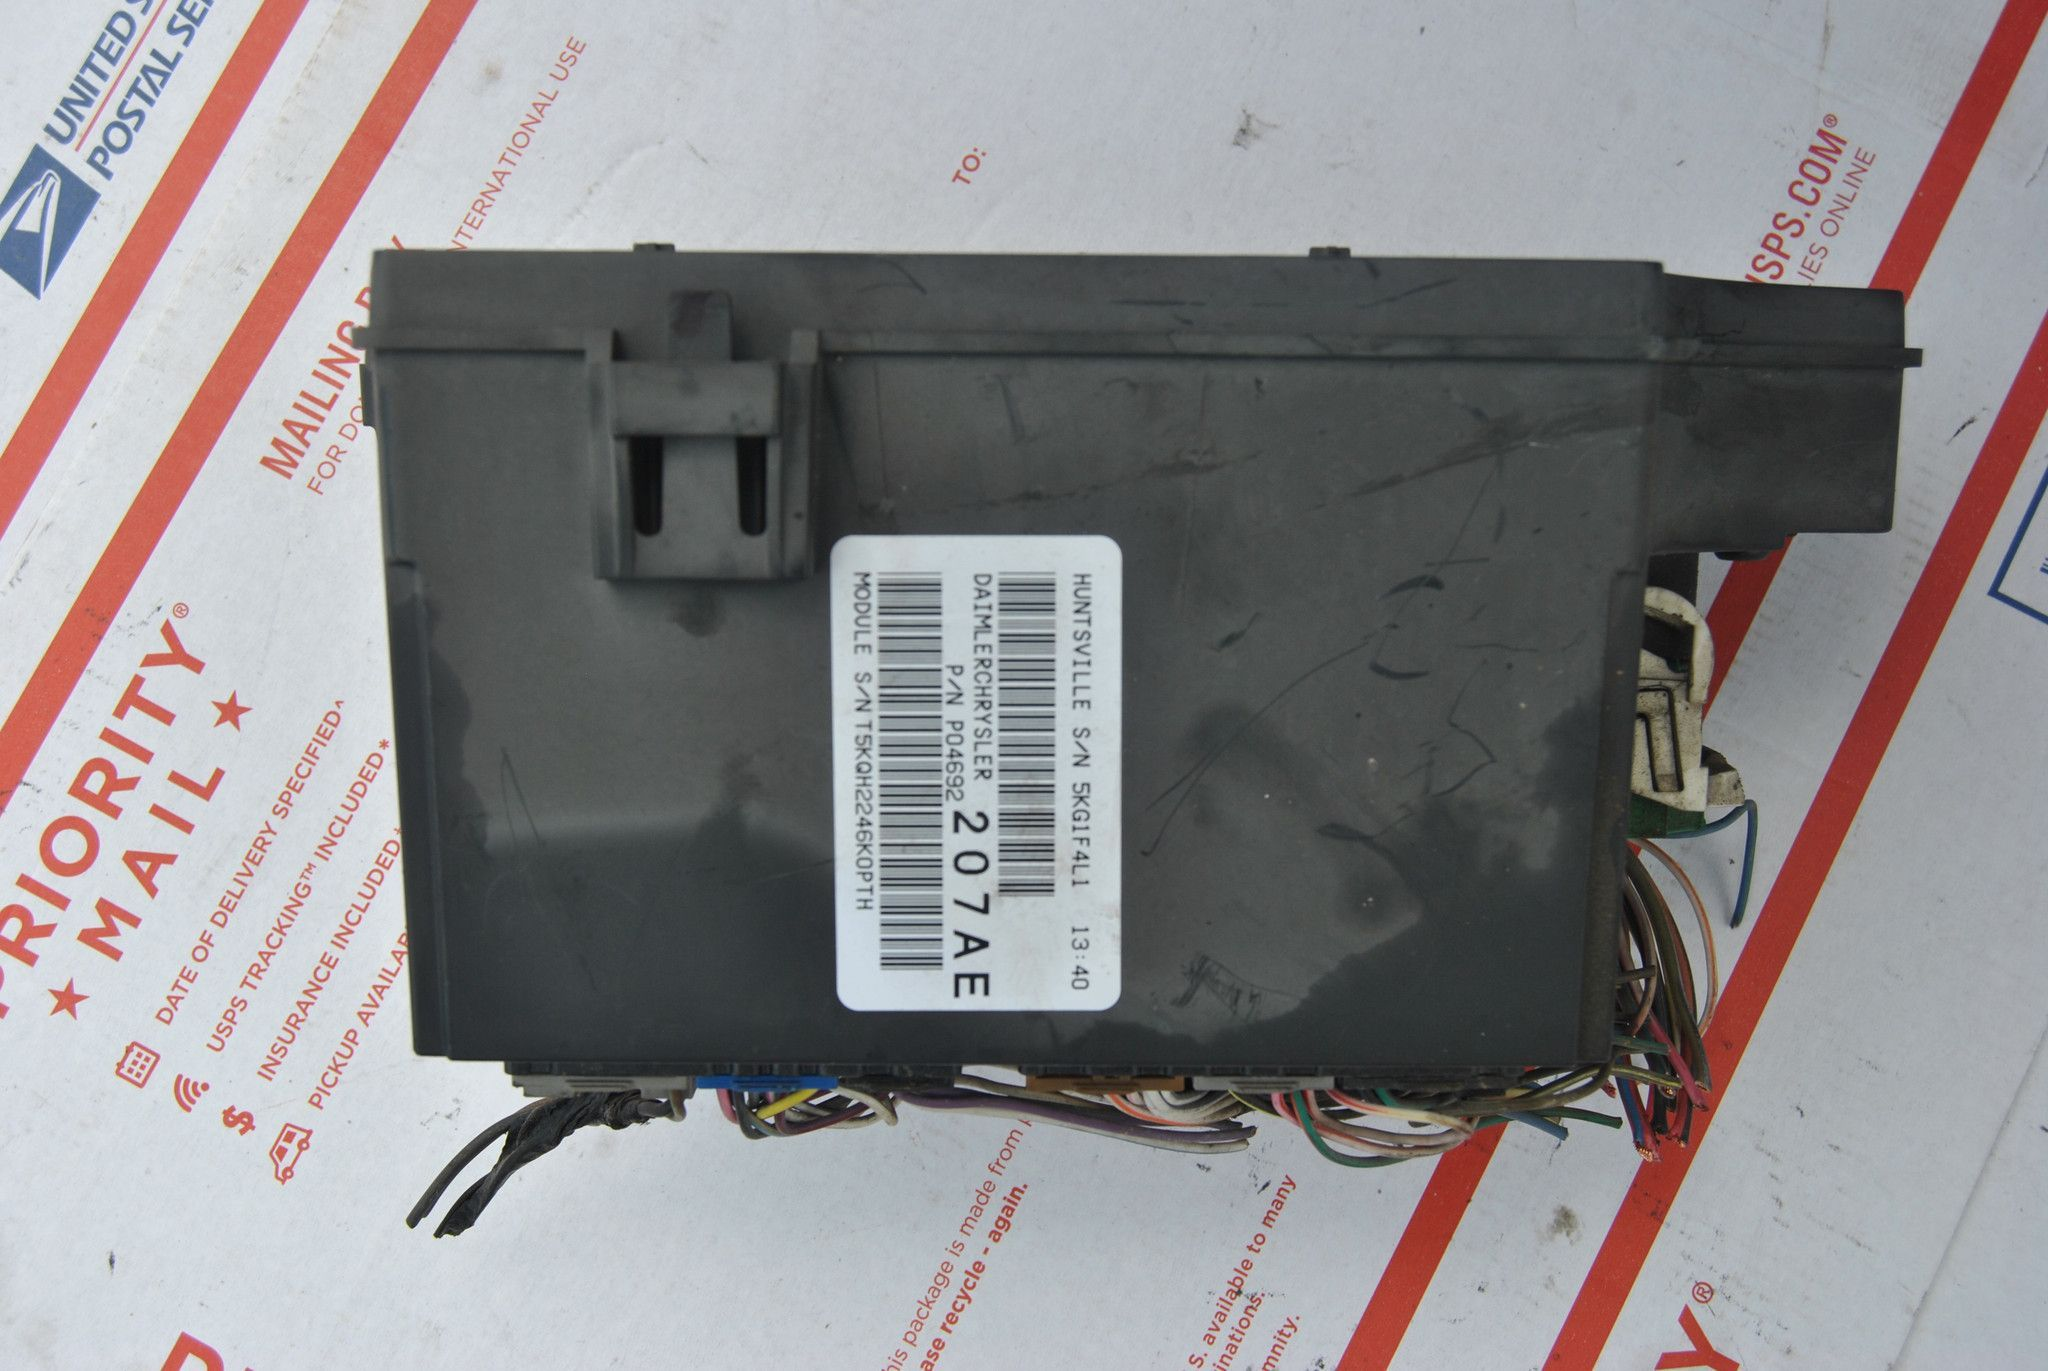 2007 DODGE CALIBER 2.4L INTEGRATED POWER MODULE FUSE BOX P04692207AE TIPM  PATRIOT Dodge Caliber,